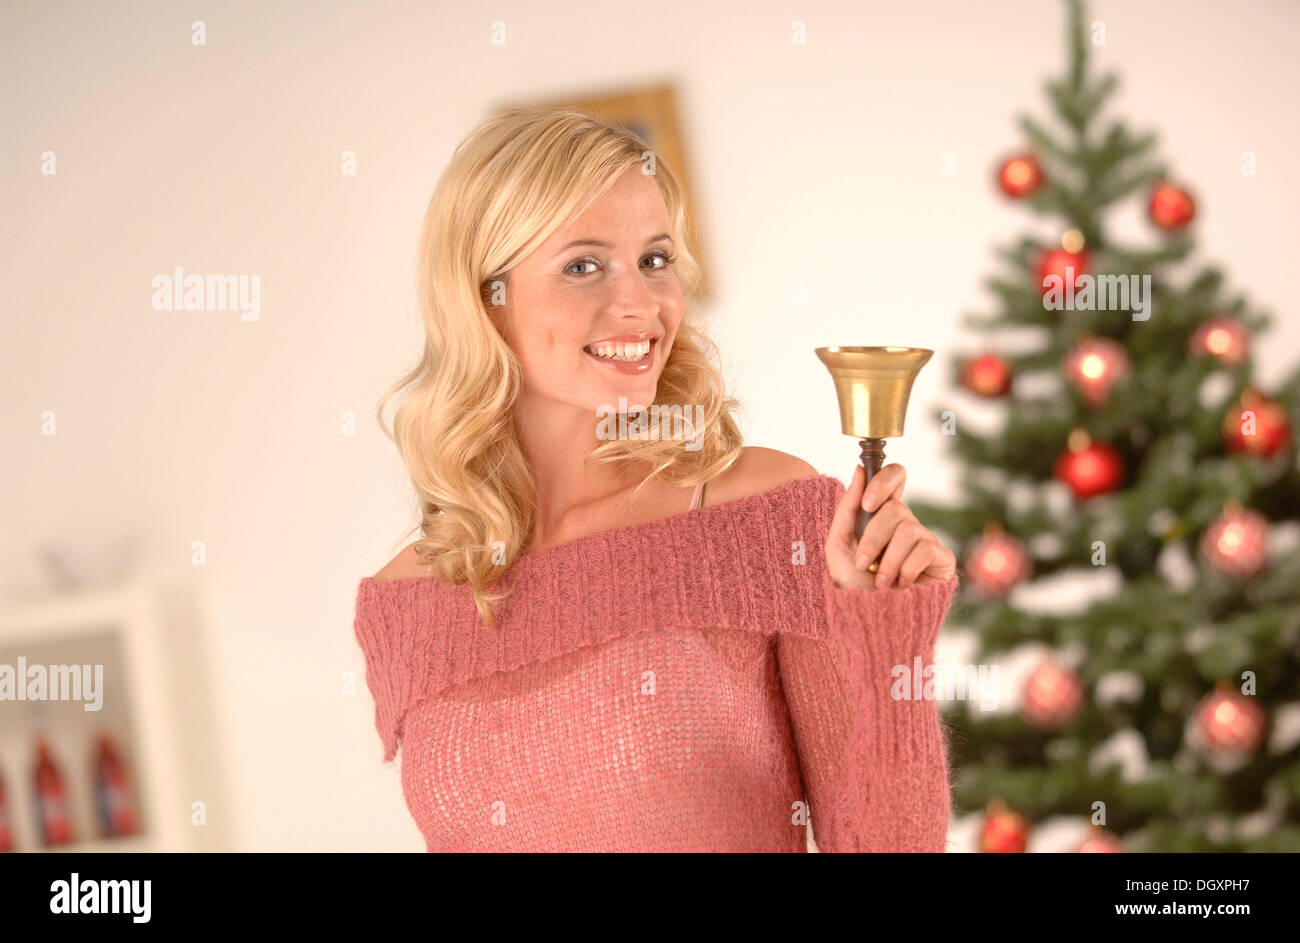 Blonde woman, 20-30, ringing a golden bell, Christmas ambience - Stock Image